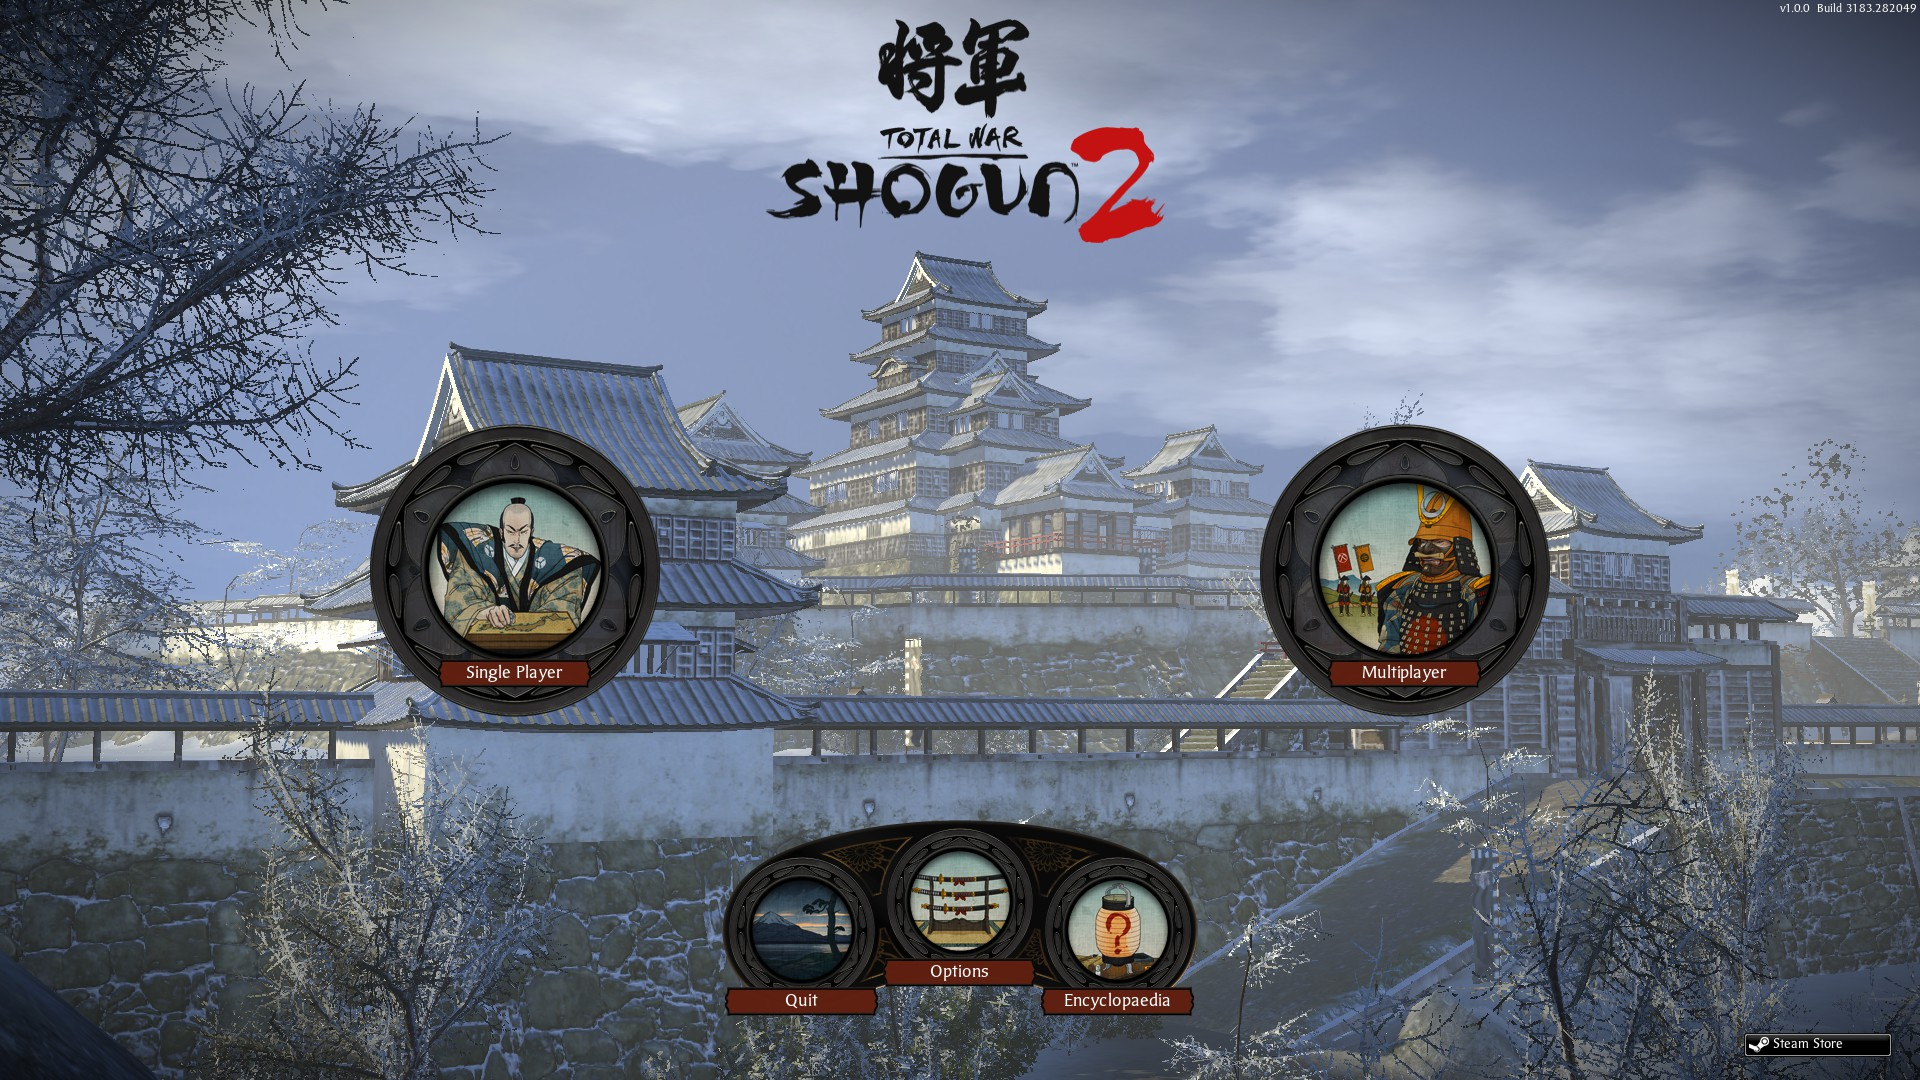 Looks like the Total War series is going back to its roots with a remake of Shogun. Should be awesome. The AI appears to be much improved, check out this […]